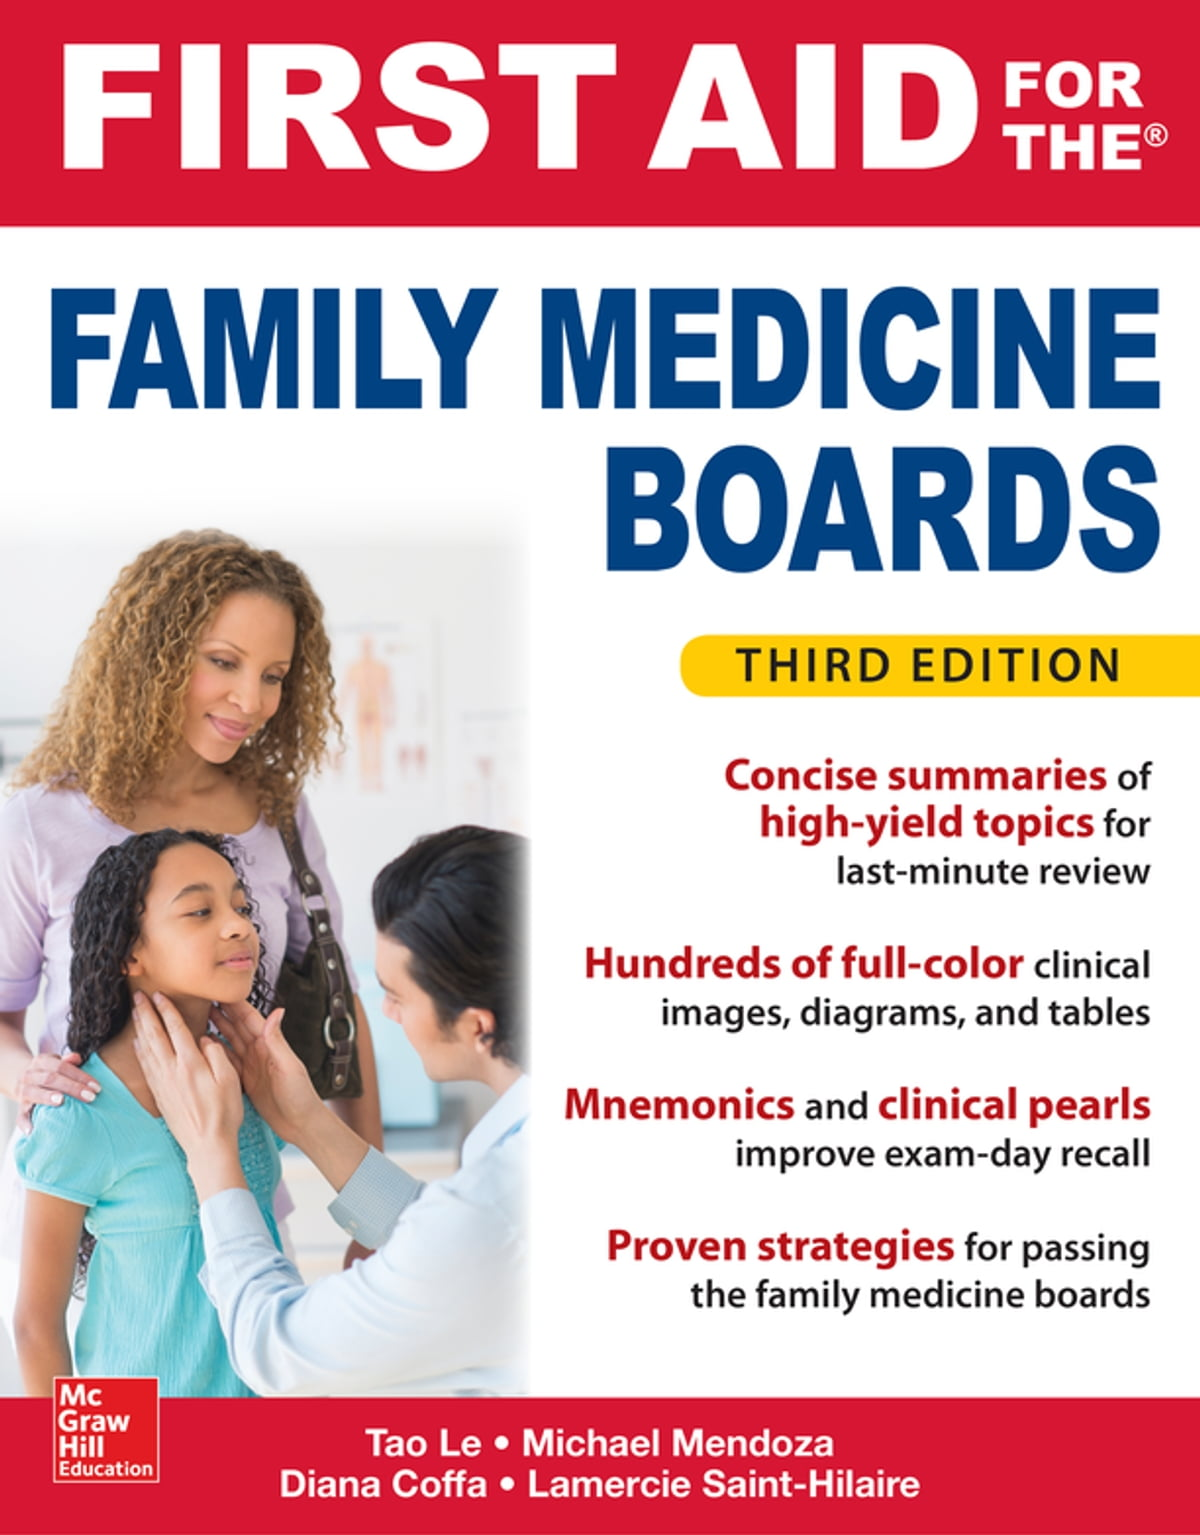 First Aid for the Family Medicine Boards, Third Edition eBook by Tao Le -  9781259835025 | Rakuten Kobo